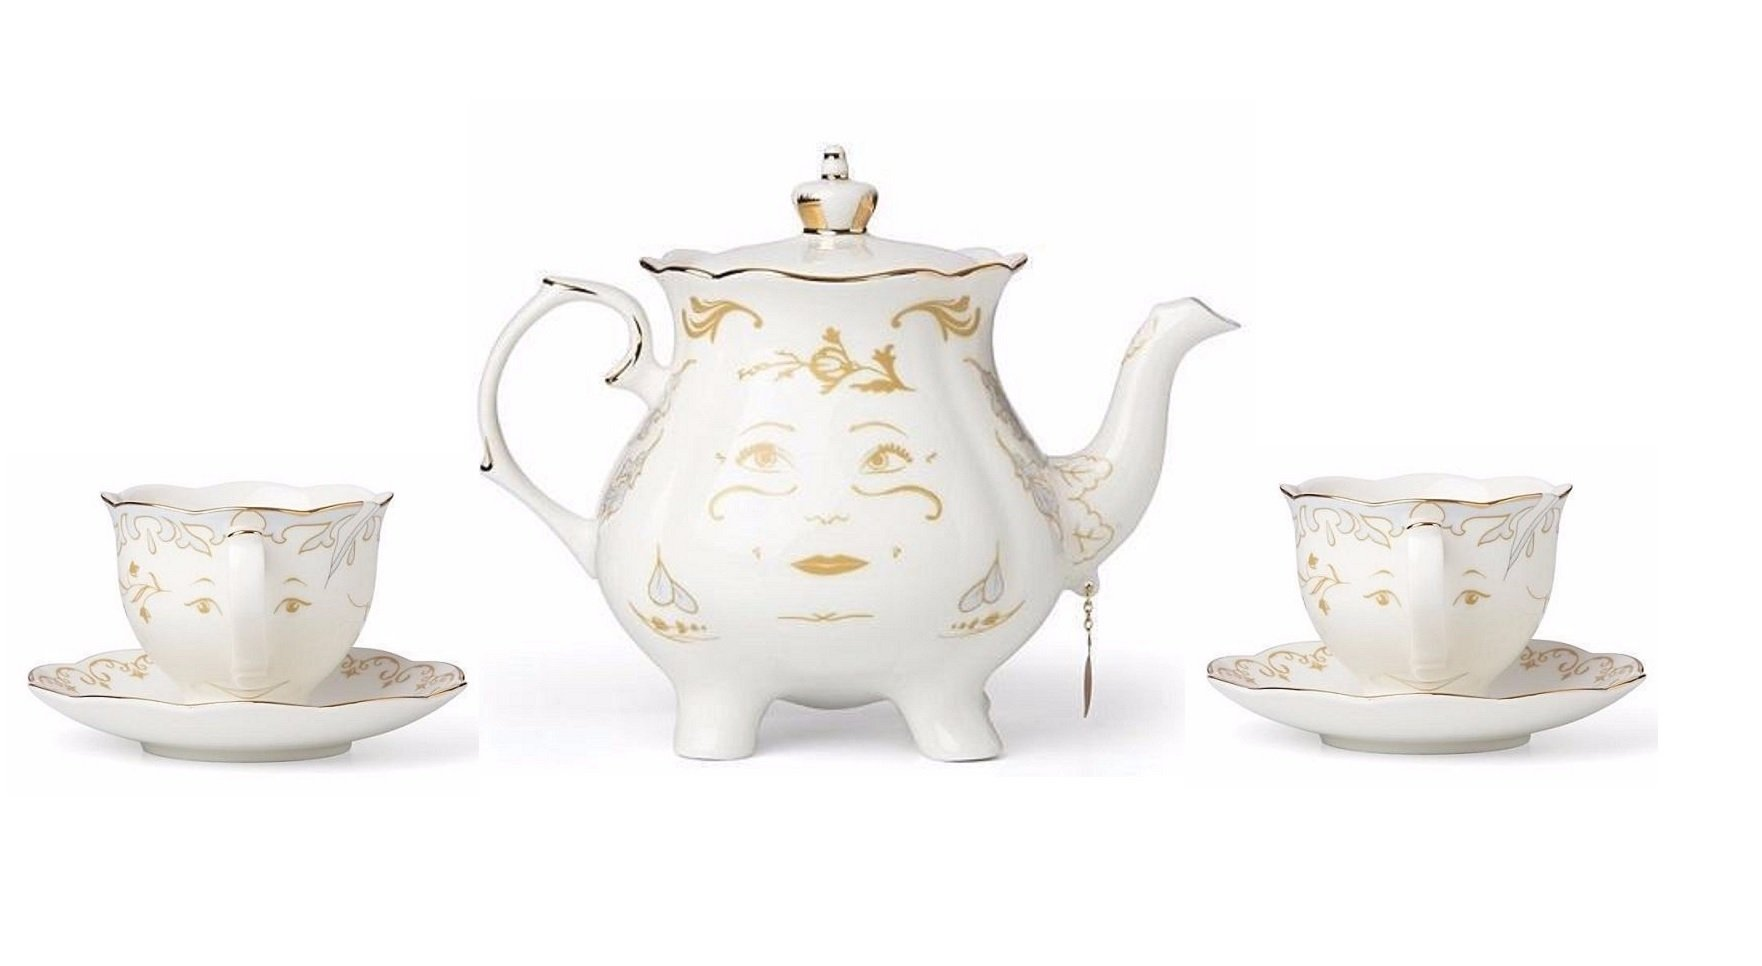 Lenox Disney Mrs Potts & Chip Figurines Beauty and The Beast Tea For Two Teapot Teacups Saucers